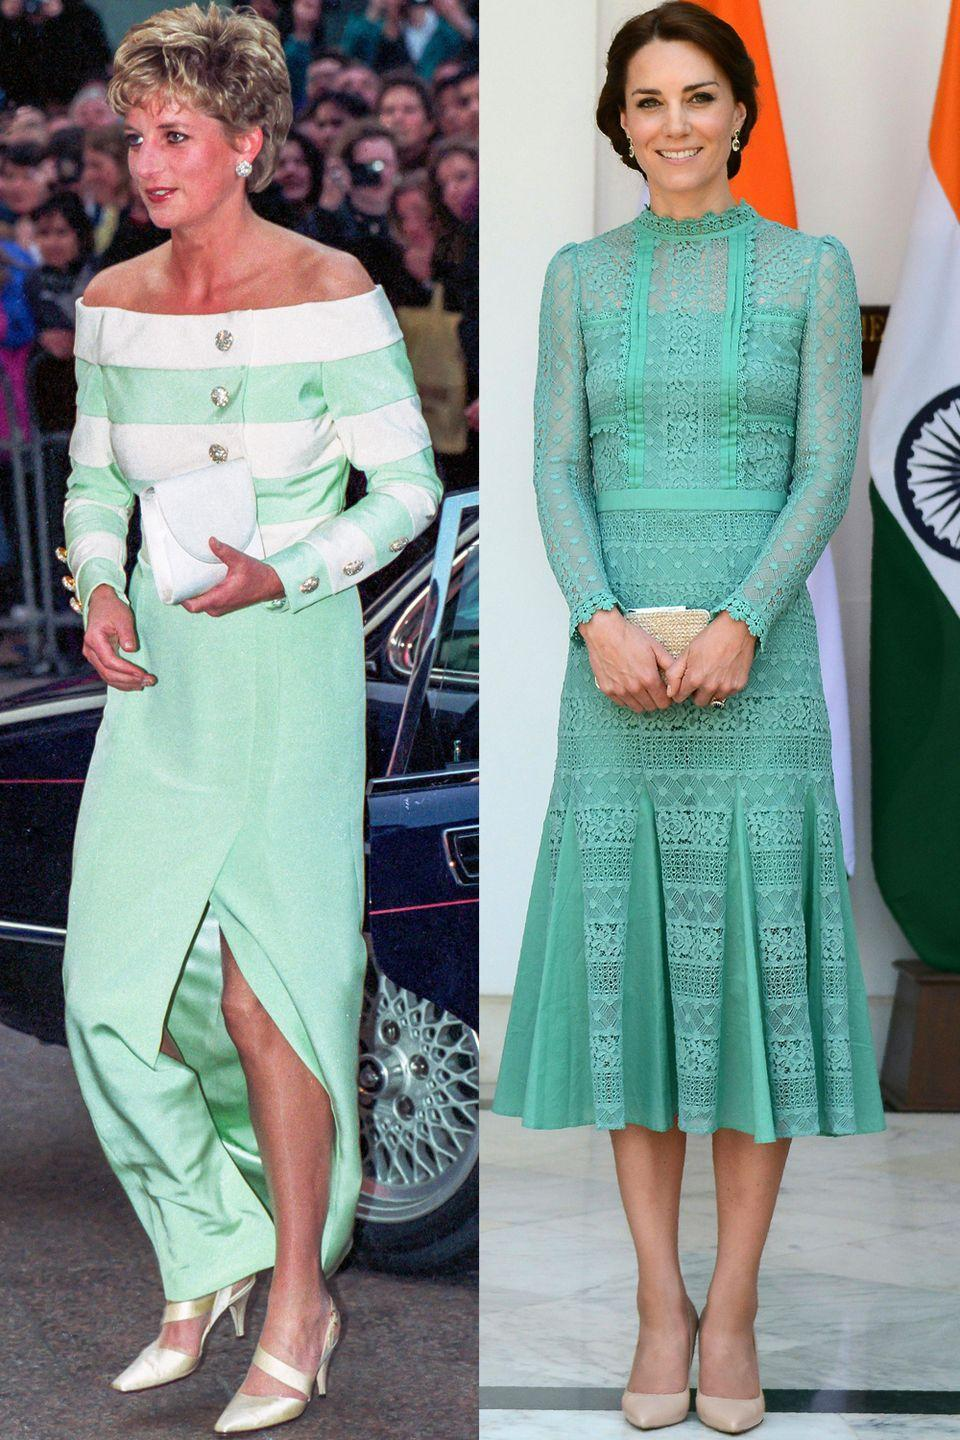 <p>Diana attending a premiere in London's West End in April 1993; Kate in Temperley London meeting the Prime Minister of India in New Delhi in April 2016.</p>